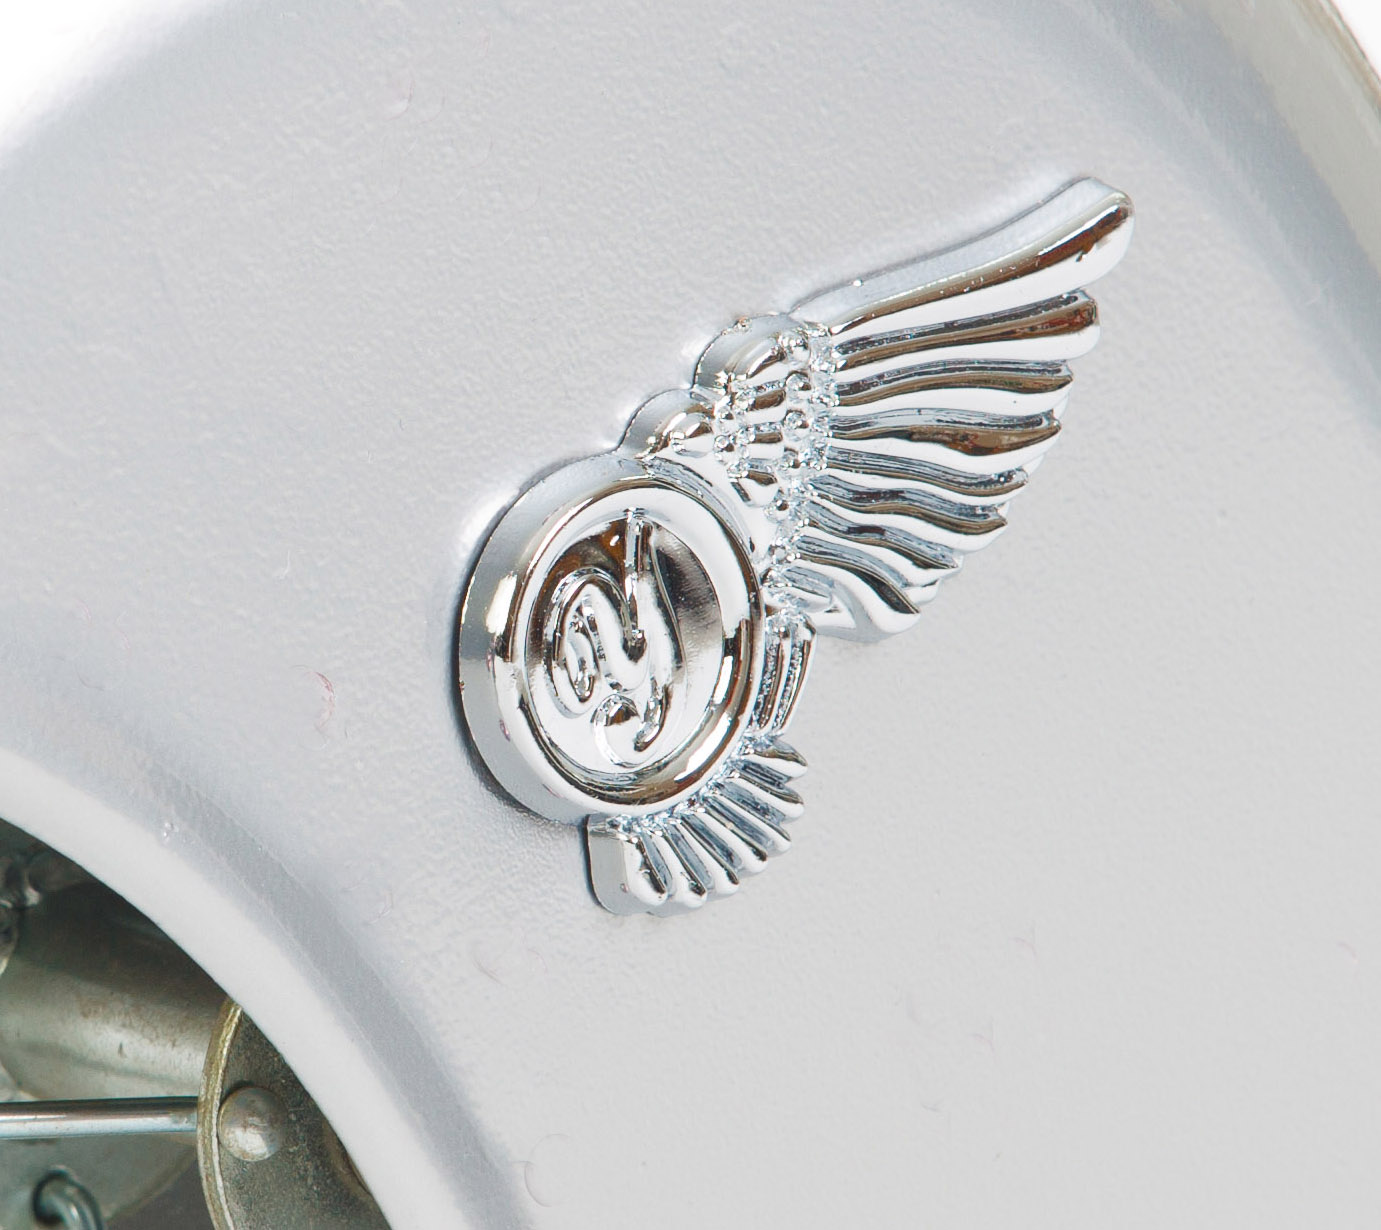 Wing Emblem x2 Retro Tricycle